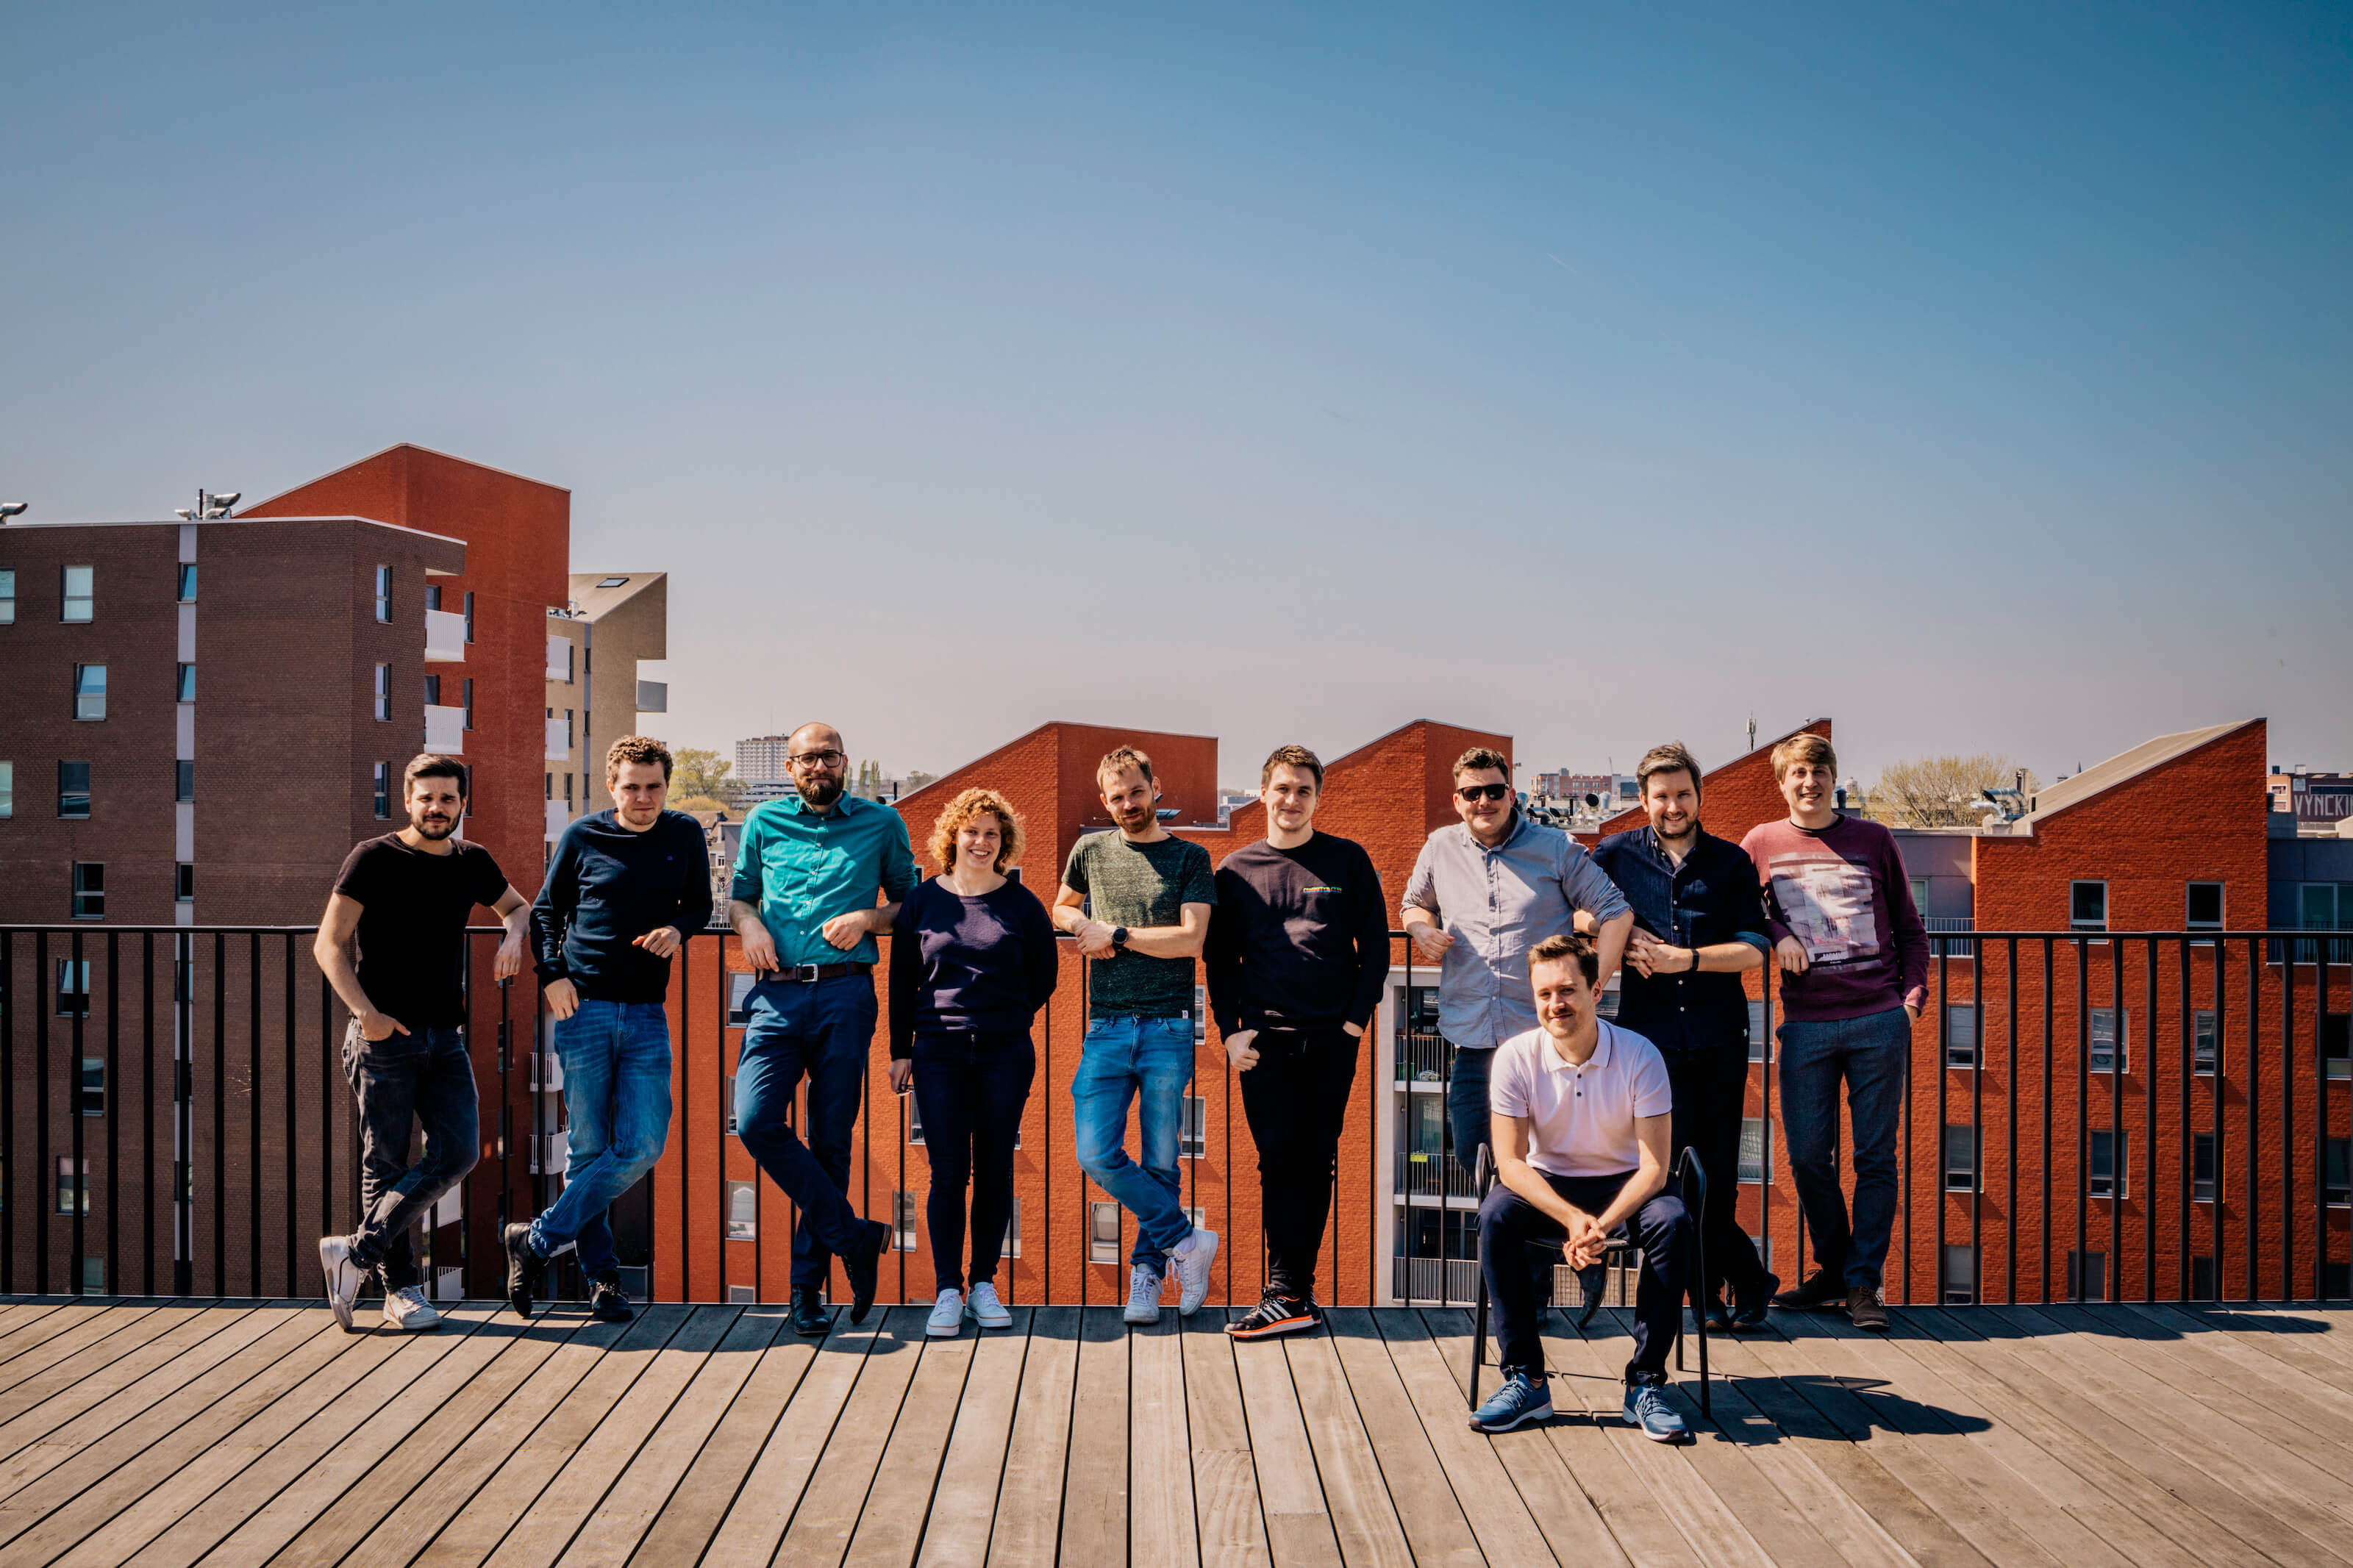 The In The Pocket Design Systems team on the terrace